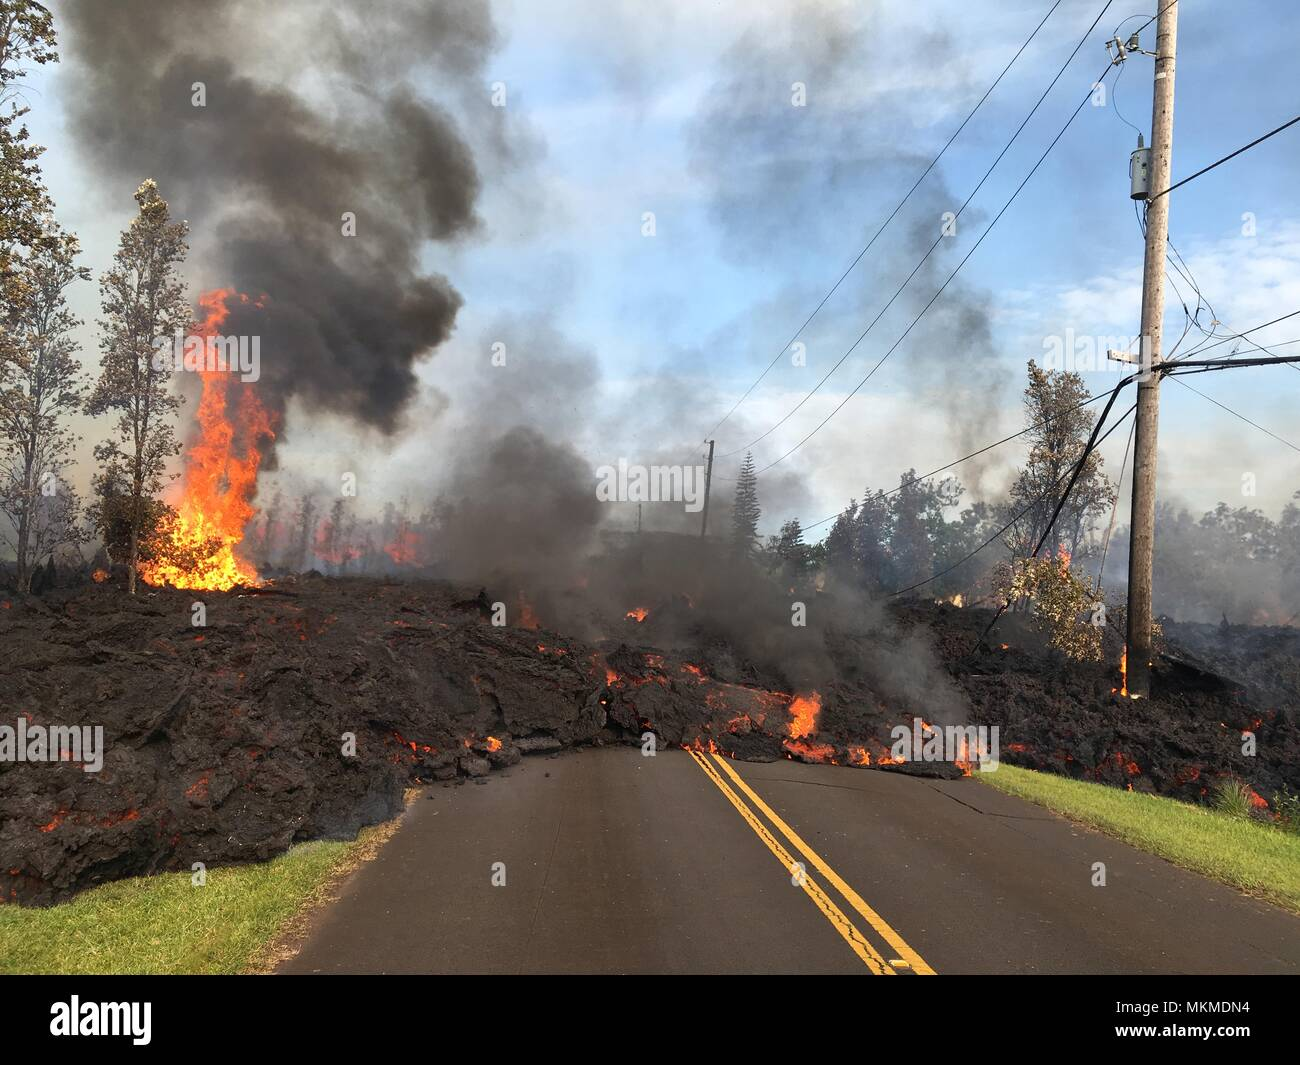 A pyroclastic lava flow from the Kilauea volcanic eruption moving along Hookapu Street May 5, 2018 in Leilani Estates, Hawaii. The recent eruption continues destroying homes, forcing evacuations and spewing lava and poison gas on the Big Island of Hawaii. - Stock Image